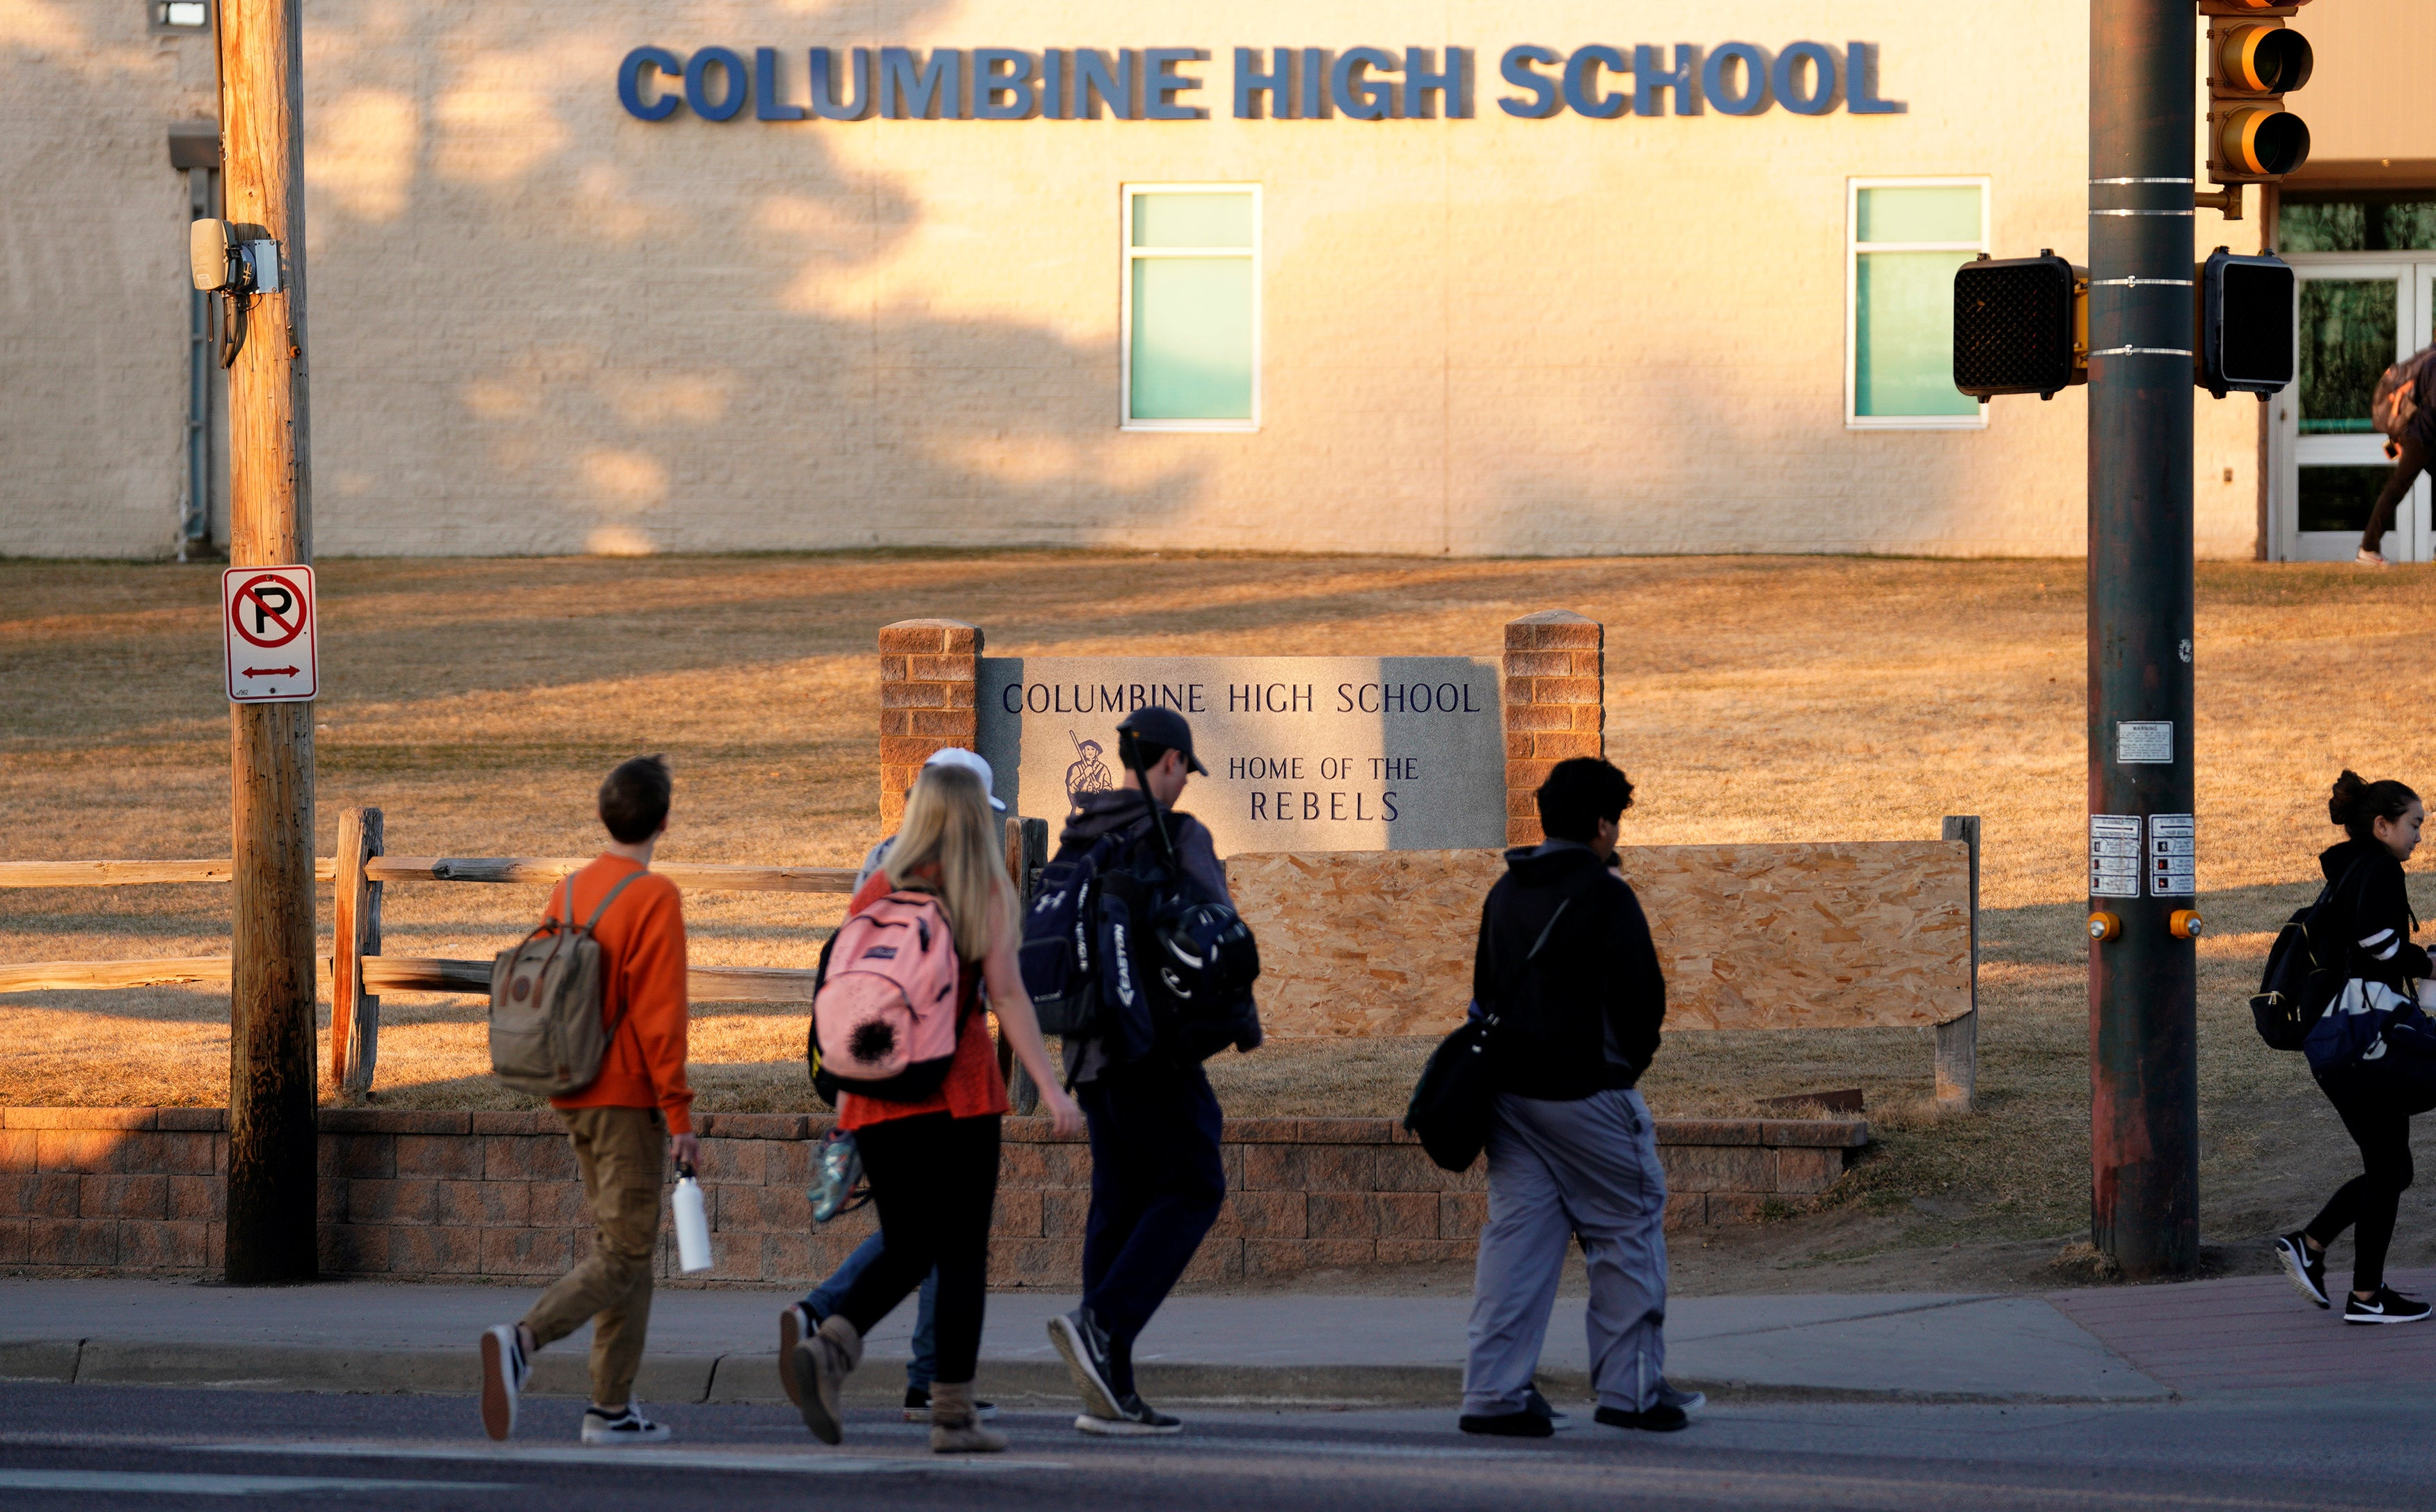 lockout at Credible  School Columbine causes High threat